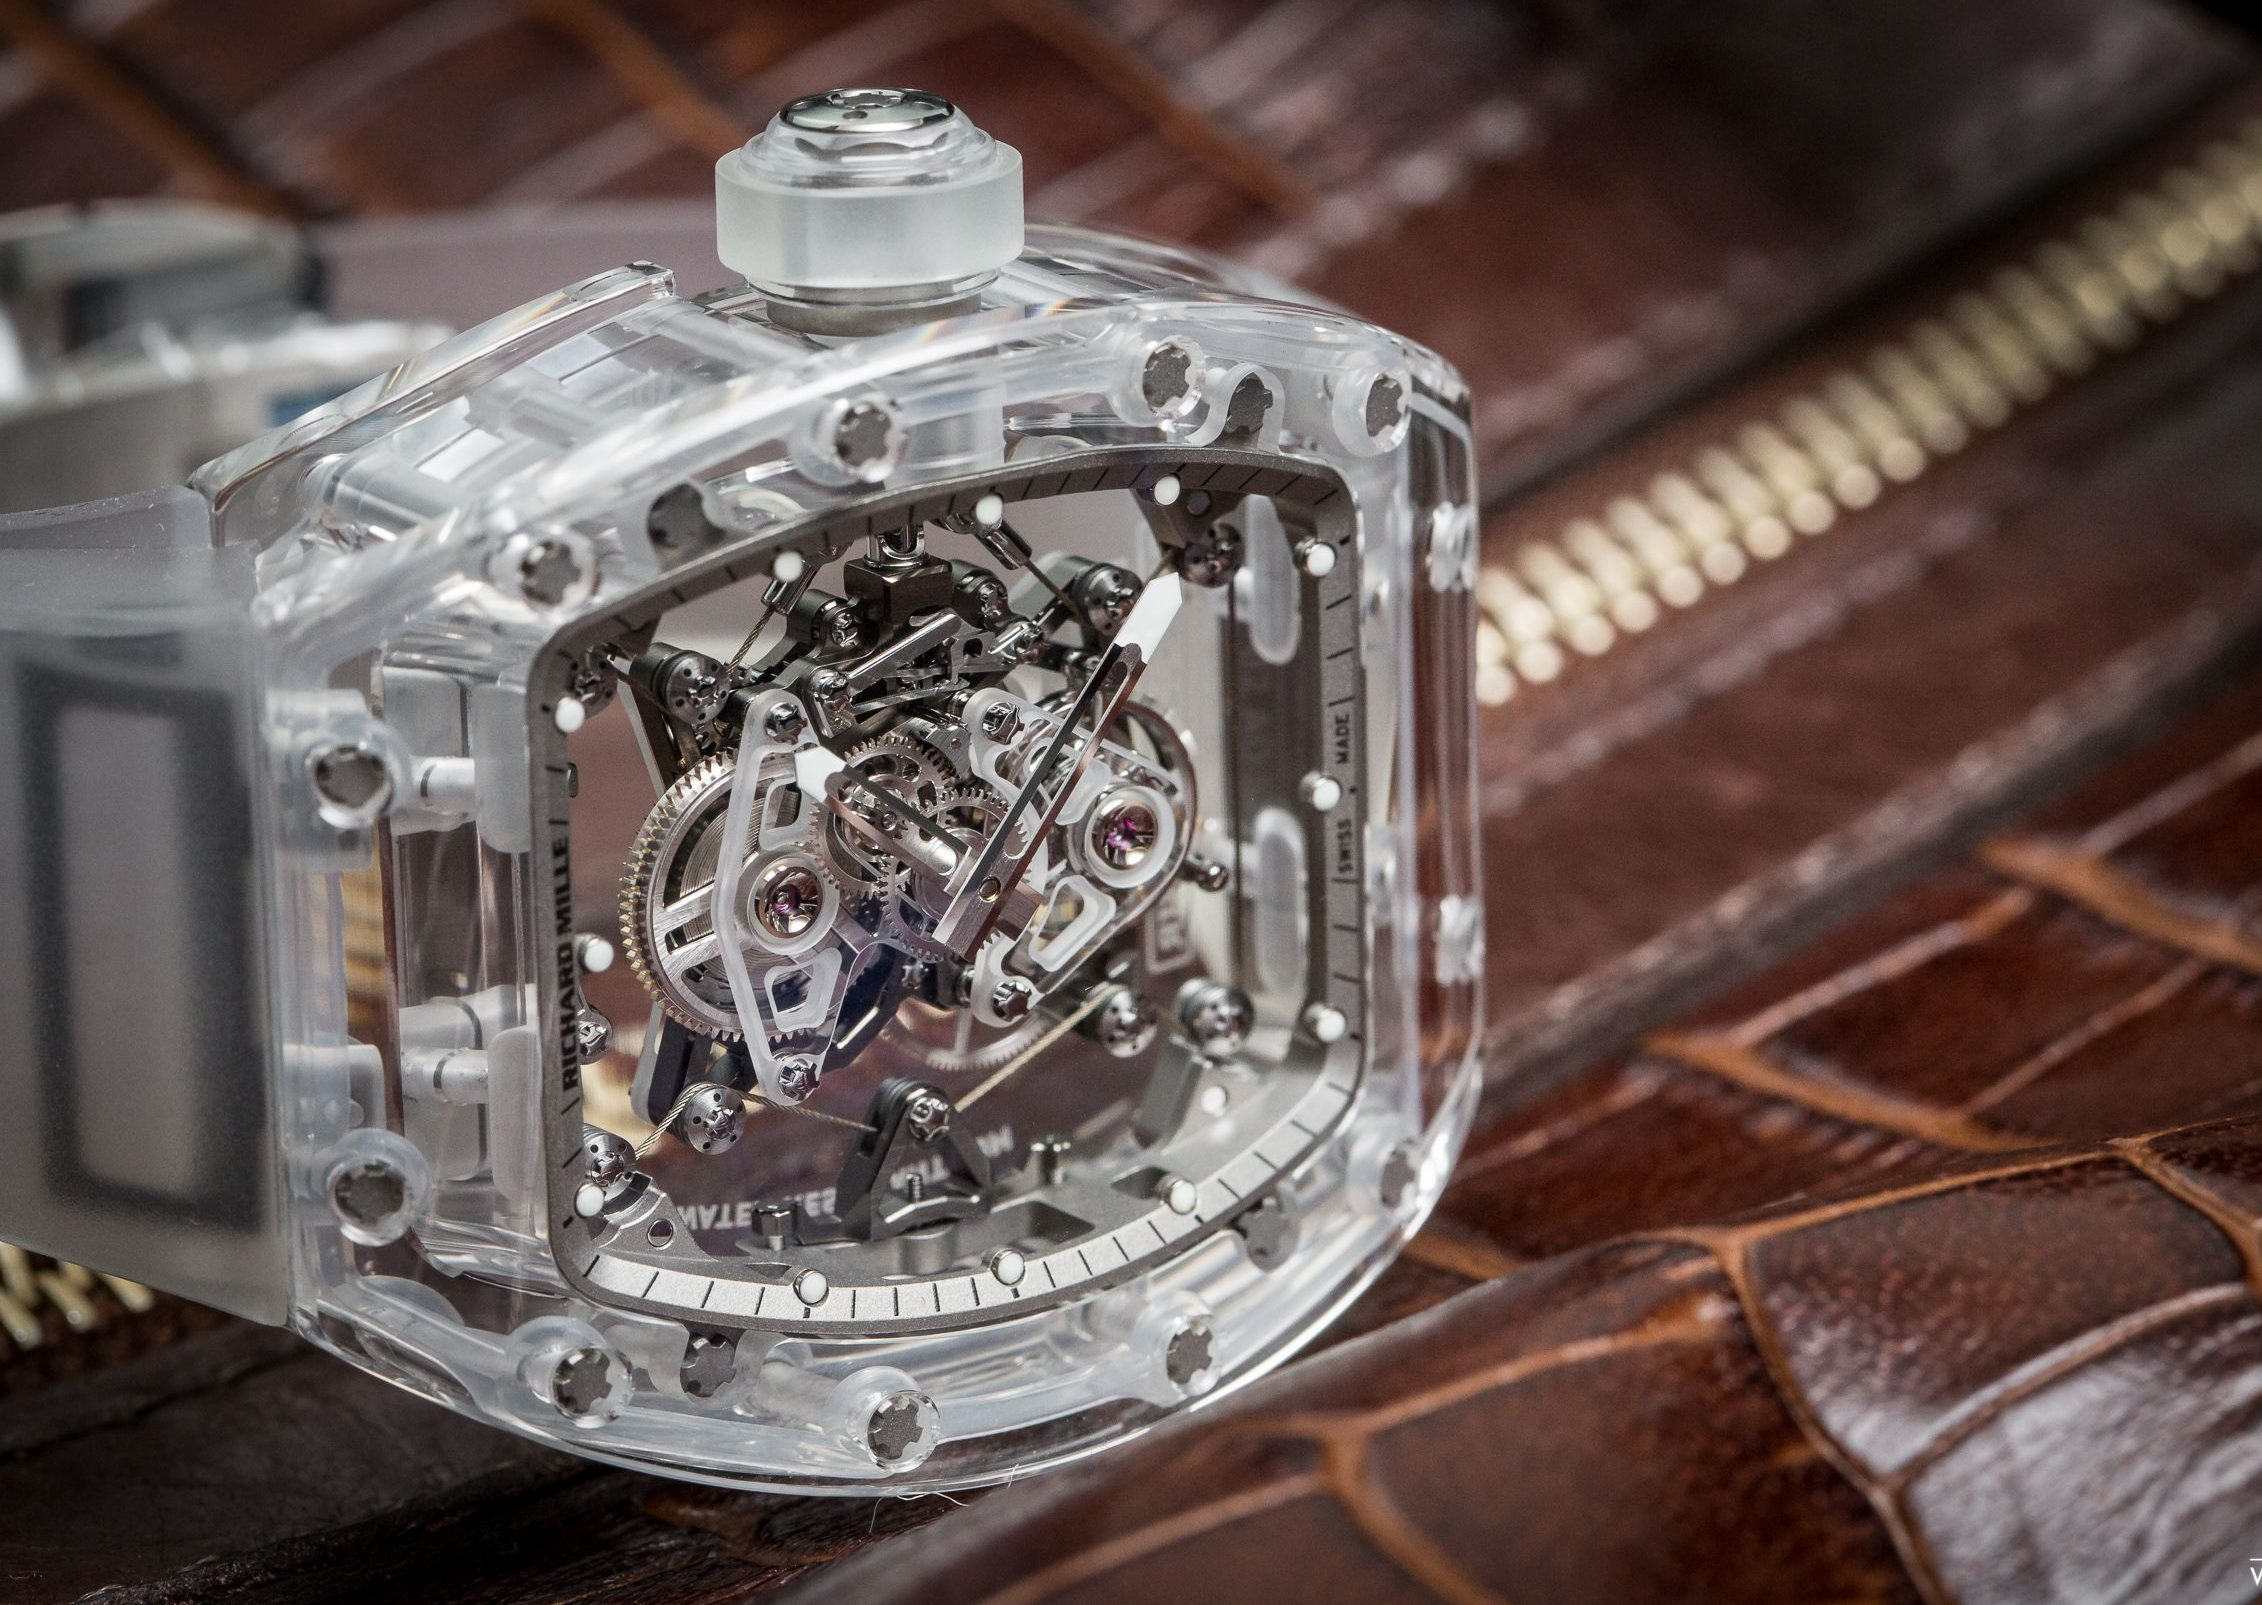 Why is it expensive: The Rs 14 cr Richard Mille RM 56-02 Tourbillon Sapphire